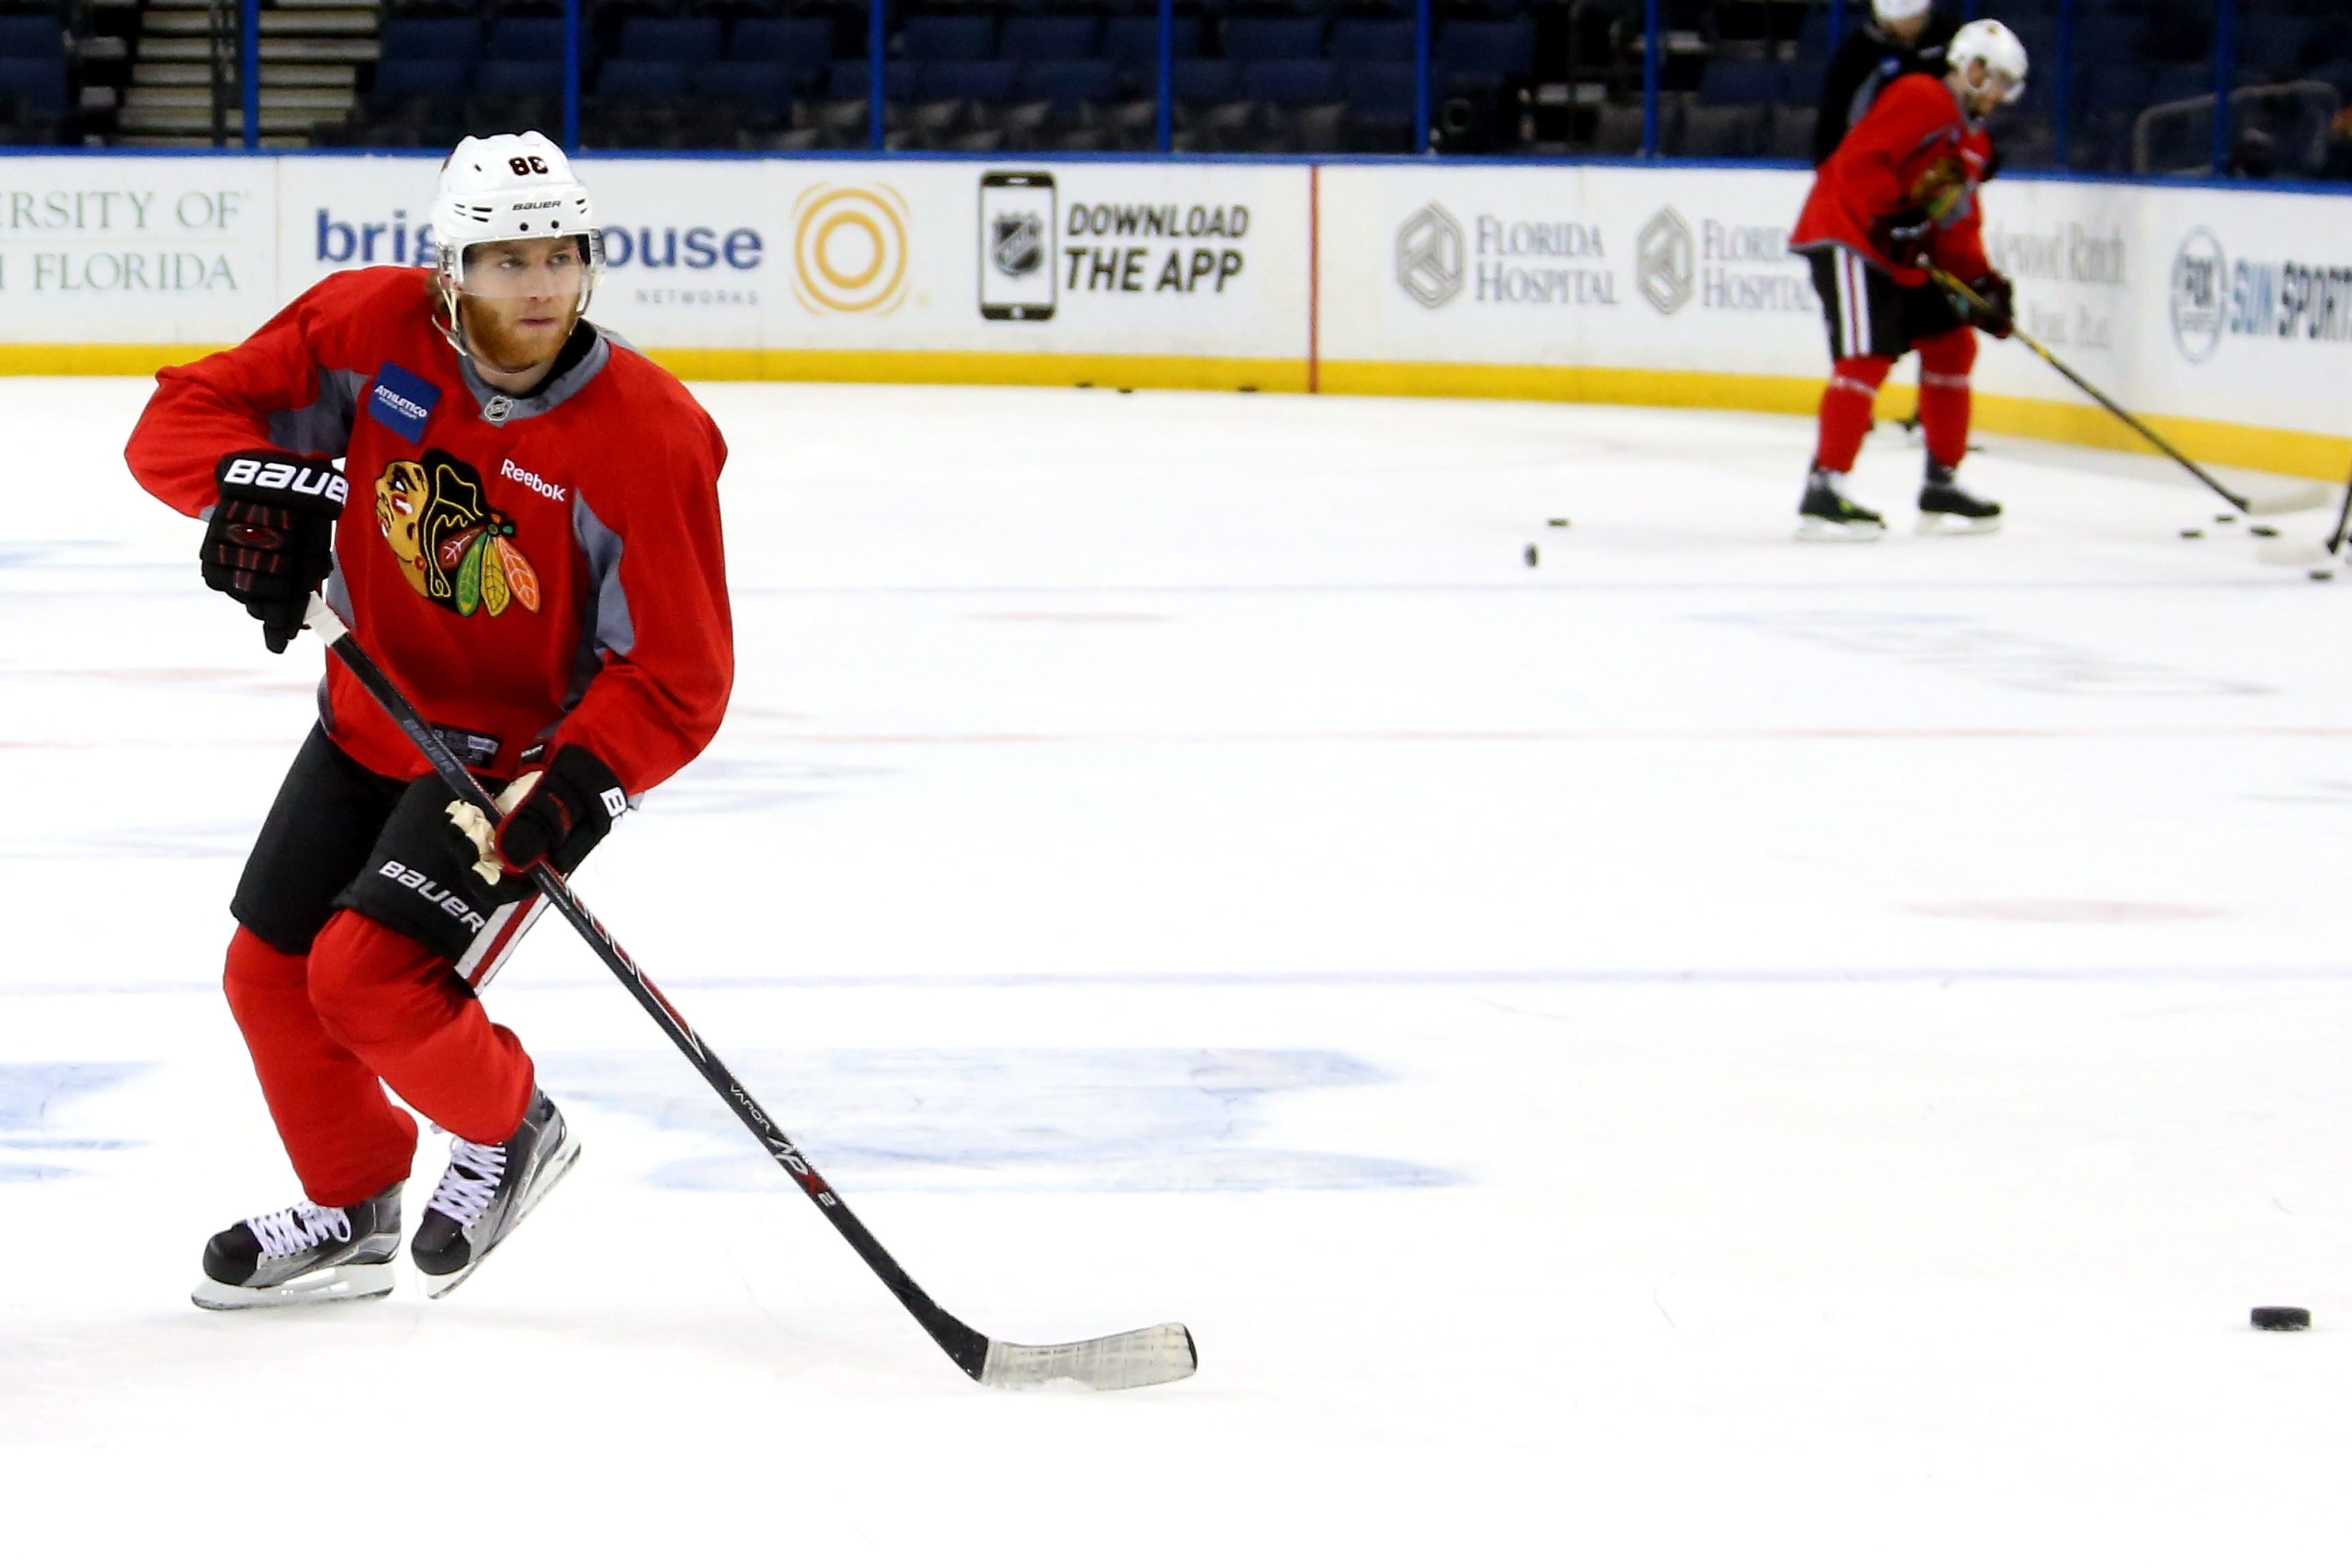 TAMPA, FL - JUNE 02:  Patrick Kane #88 of the Chicago Blackhawks skates during practice for the 2015 NHL Stanley Cup Final at Amalie Arena on June 2, 2015 in Tampa, Florida.  (Photo by Bruce Bennett/Getty Images)